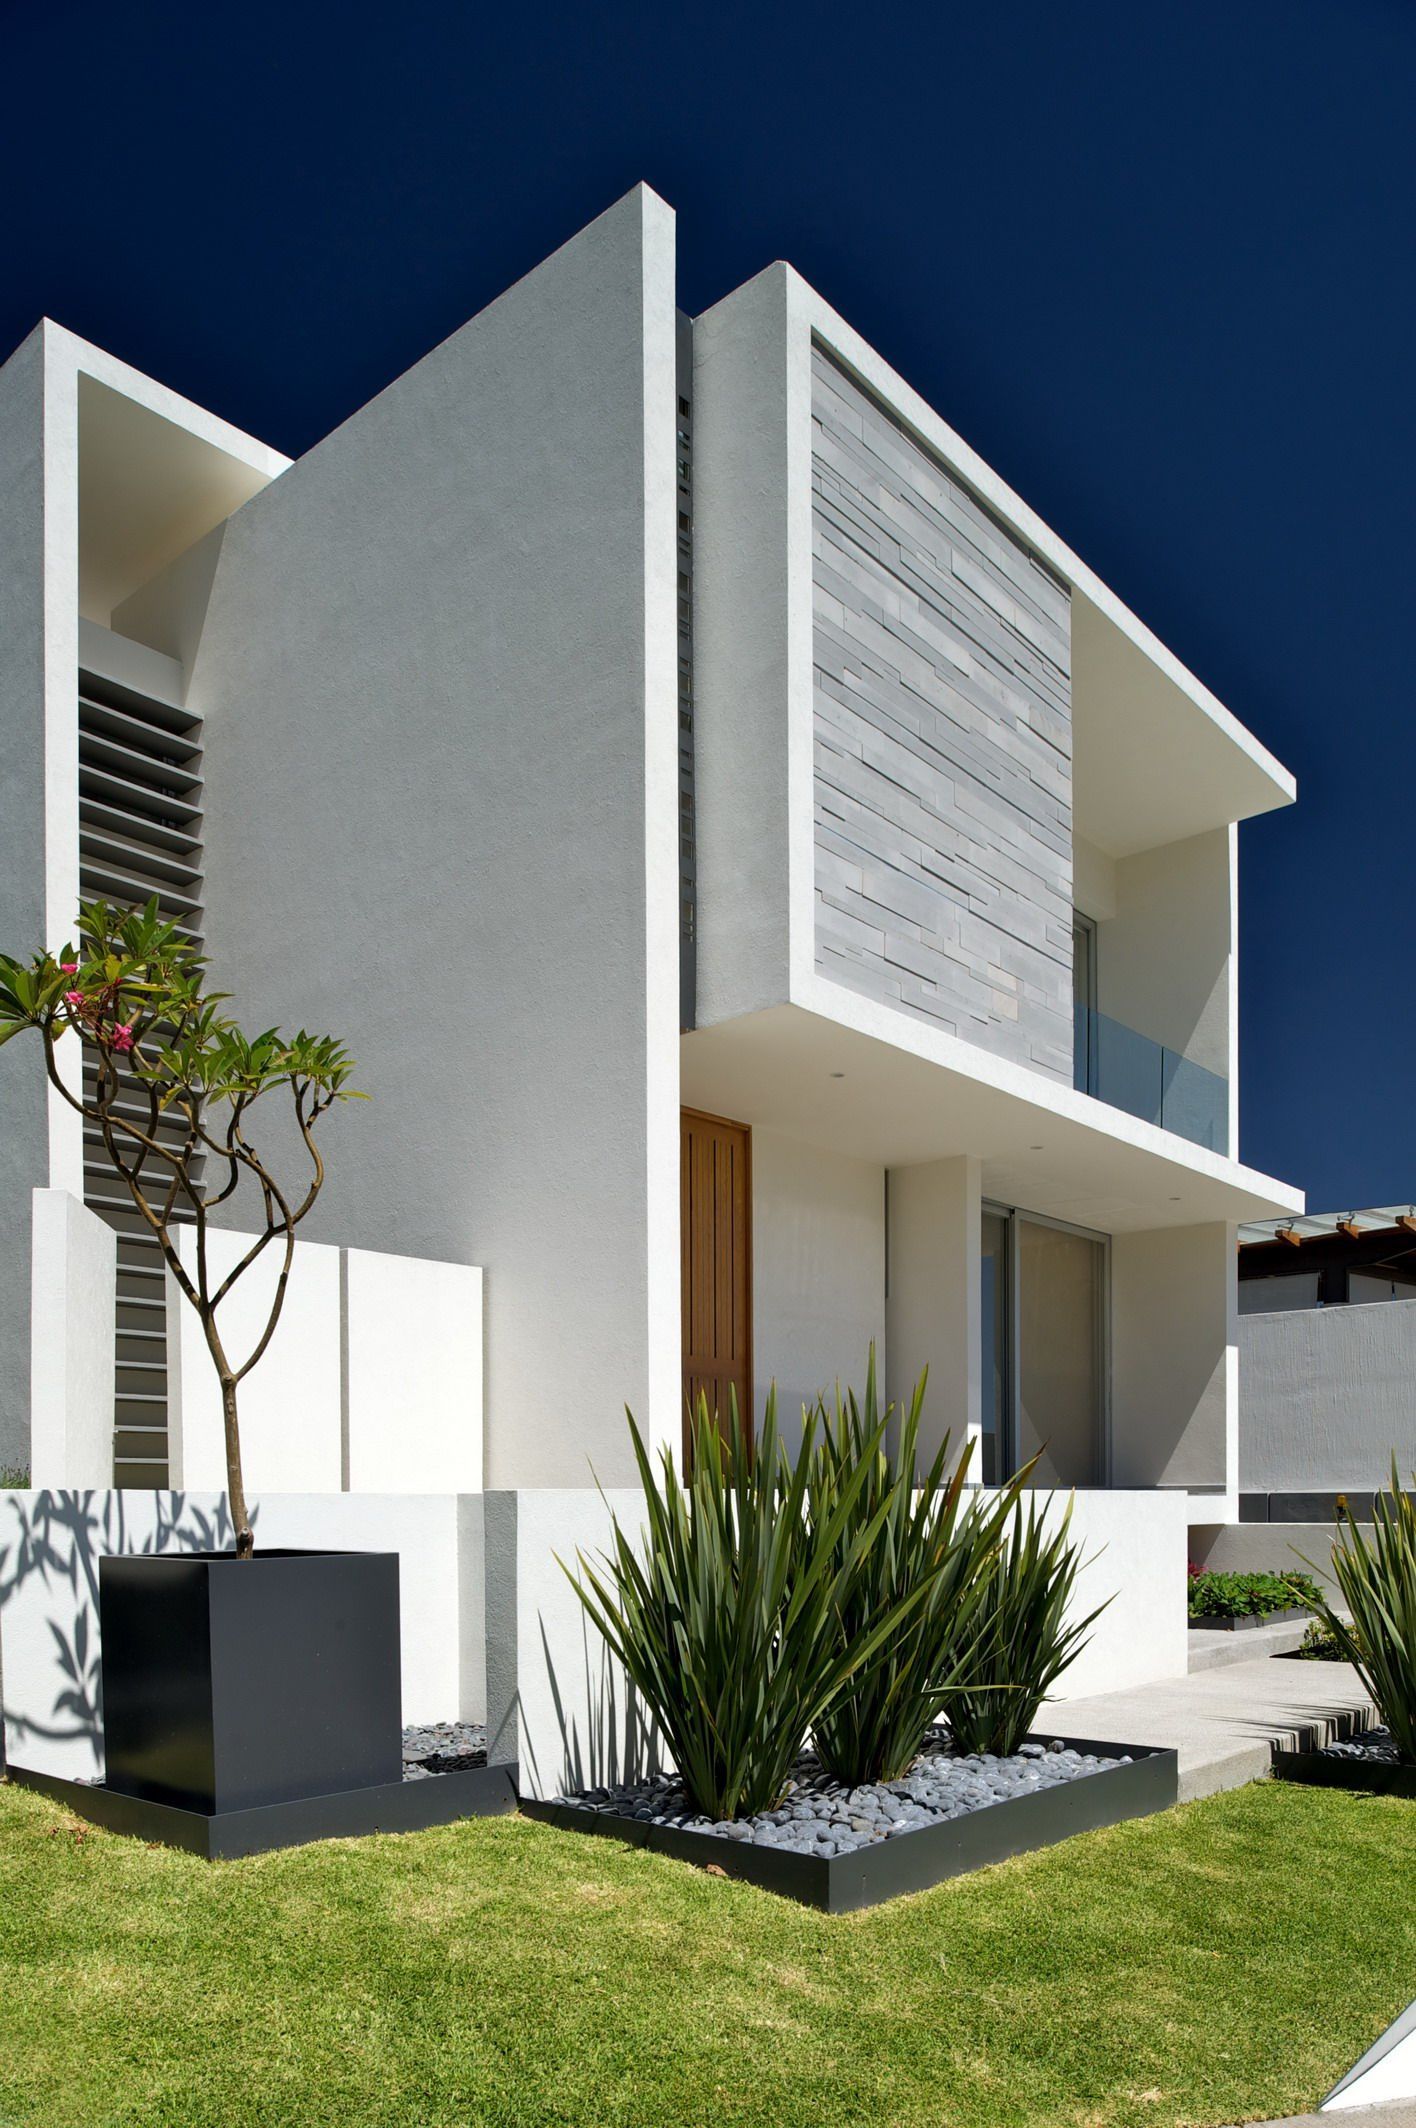 Flachdachhaus Modern Single Family House Guadalajara México House Pinterest